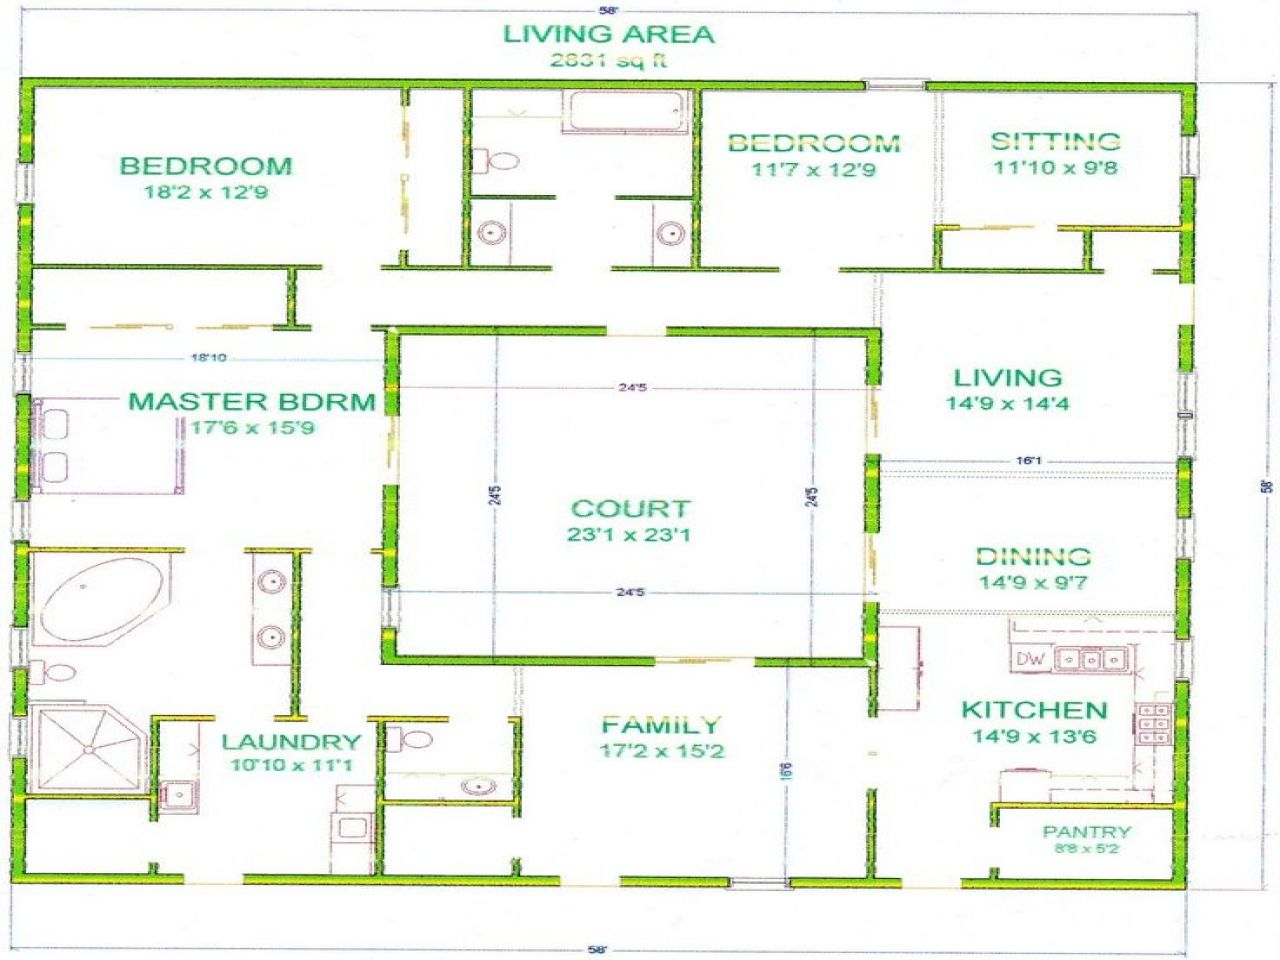 House Plan With Courtyard In Center Of House Planhome Plans Ideas Container House Plans Courtyard House Plans Courtyard House